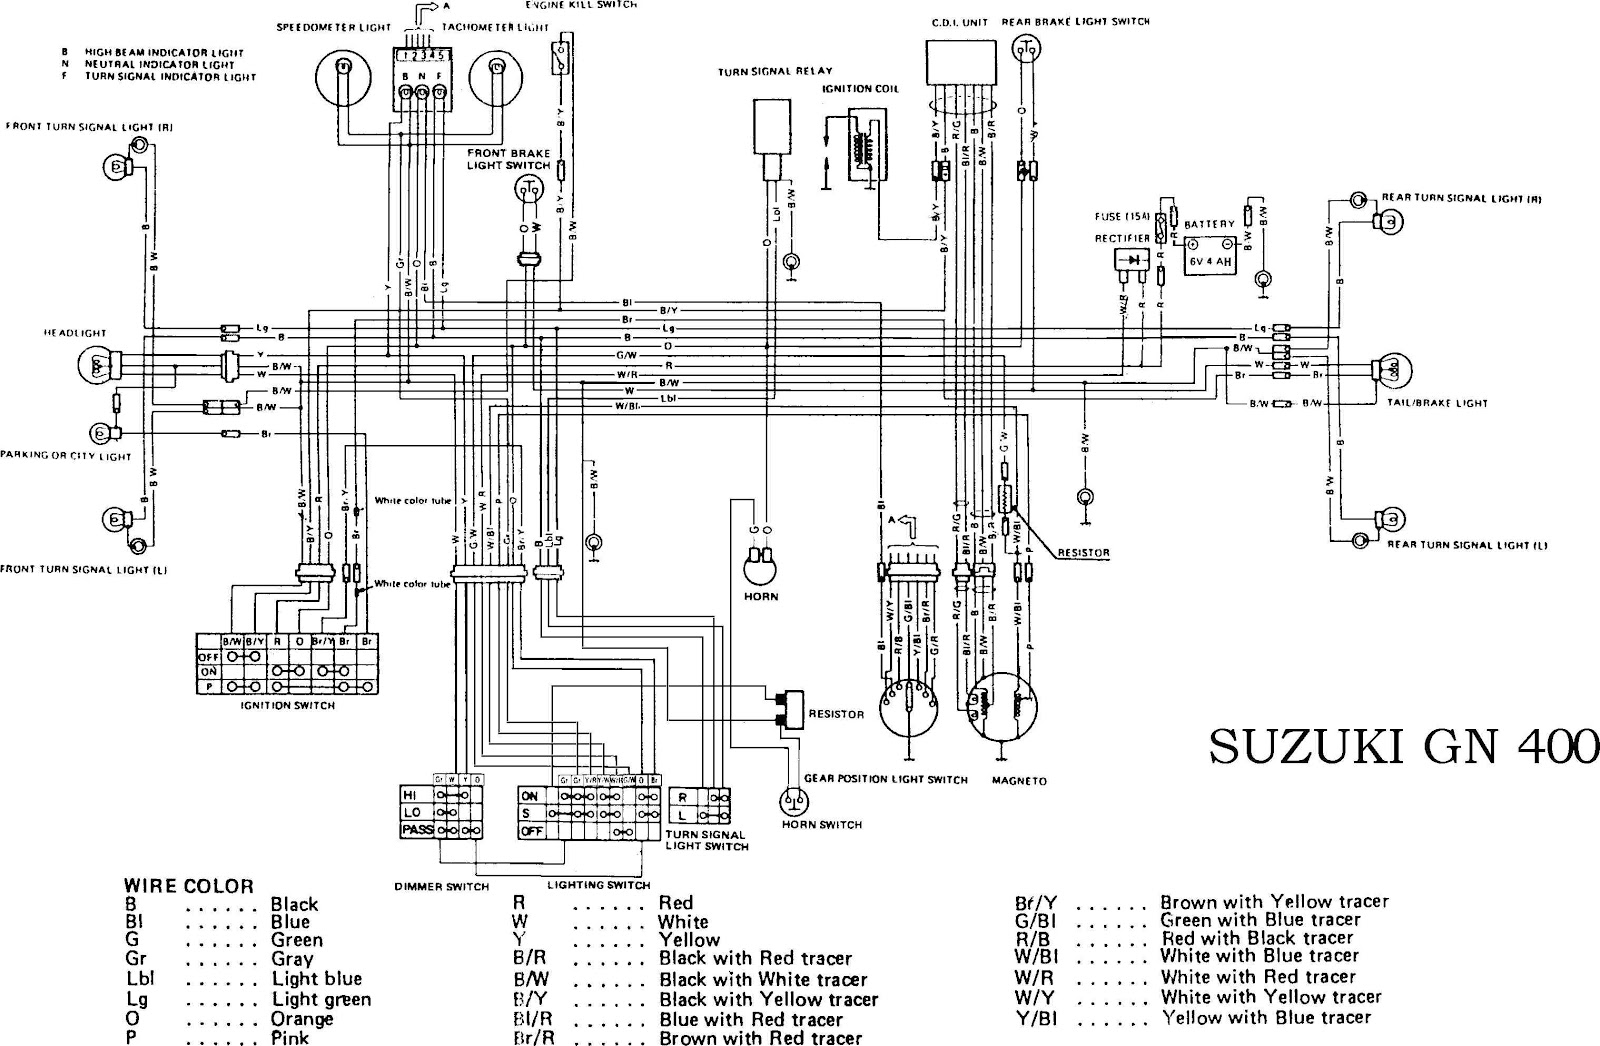 1998 Honda Goldwing Wiring Diagram About 2008 Fancy 1983 Gl1100 Elaboration Electrical Mr50